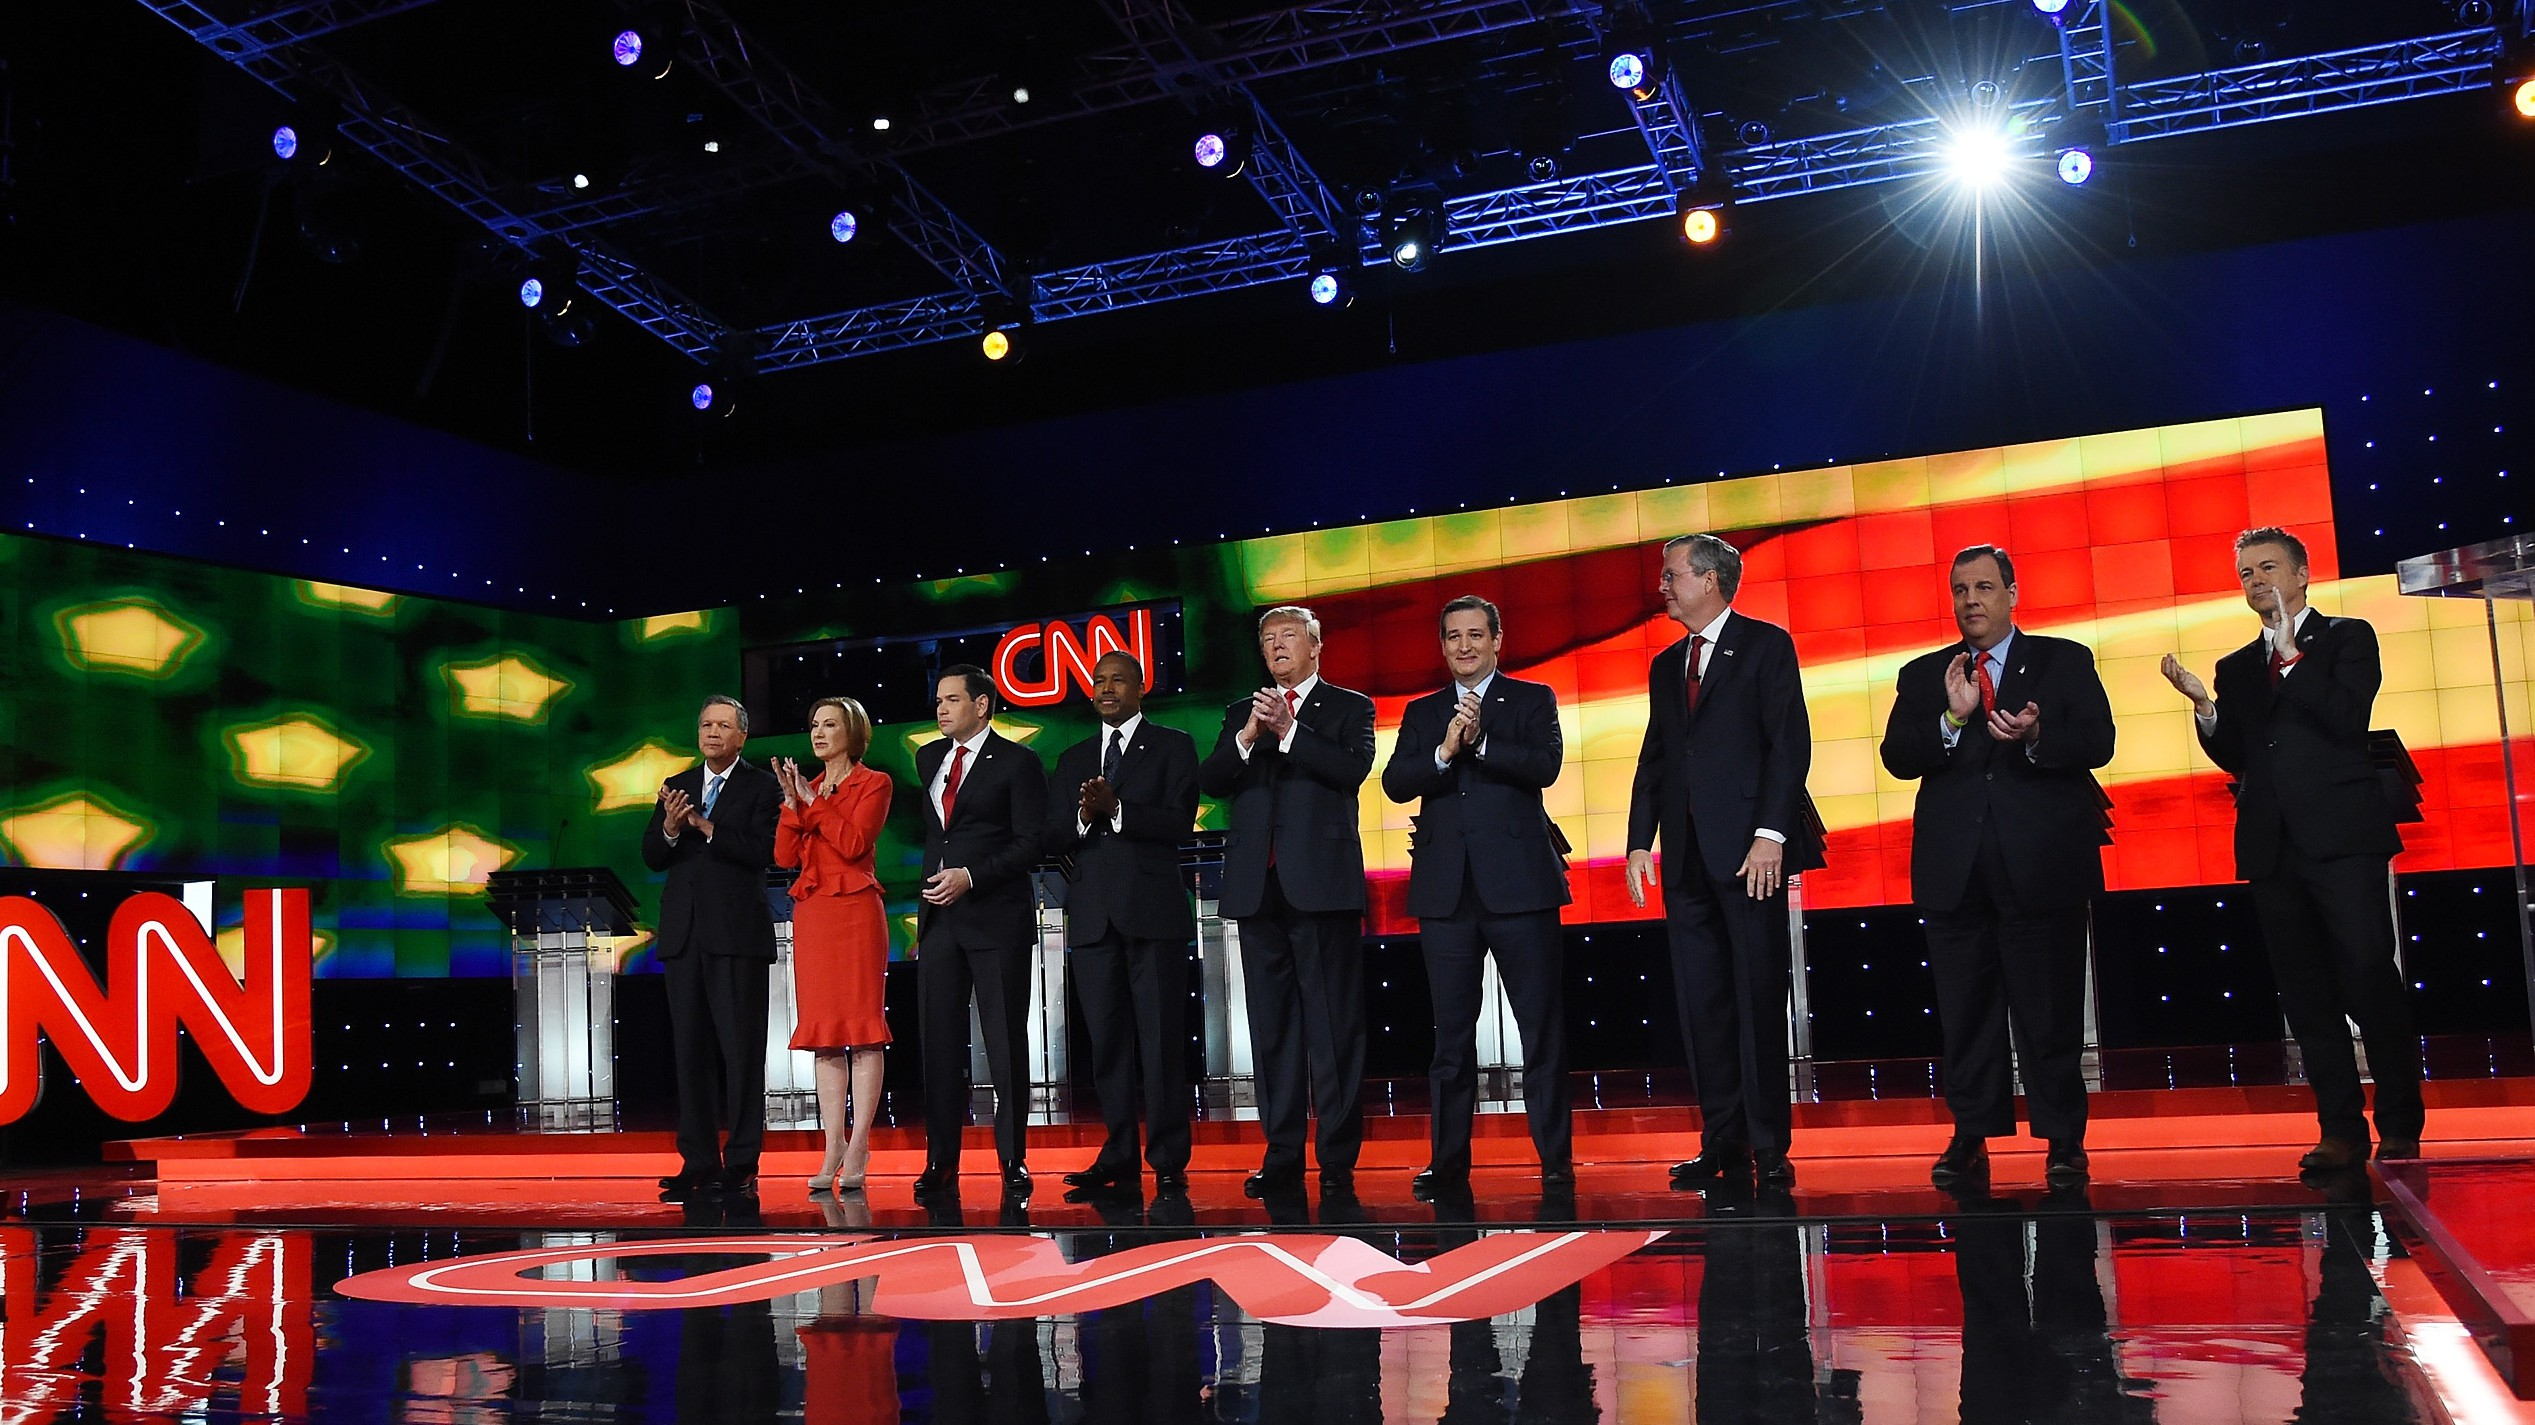 One of the Republican candidates has a cold, but no one can figure out who it is. (Getty)